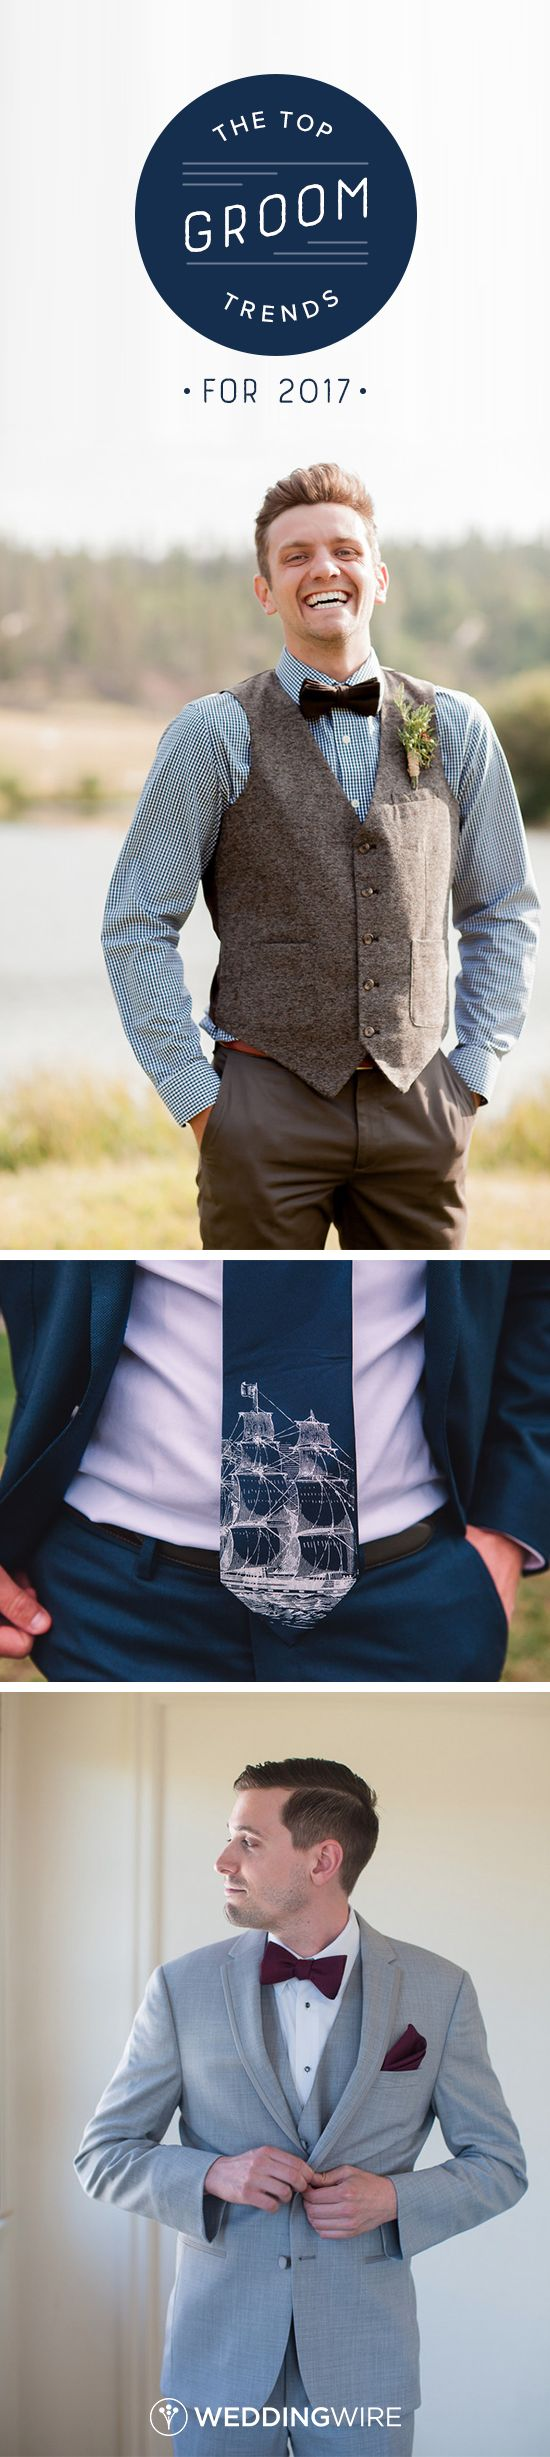 The Top Groom Trends for 2017 - From tweed vests to warm hues, see the top groom attire trends on @weddingwire!  {Alison Rose Photography, Katie Slater Photography, Joleen Willis Photography}